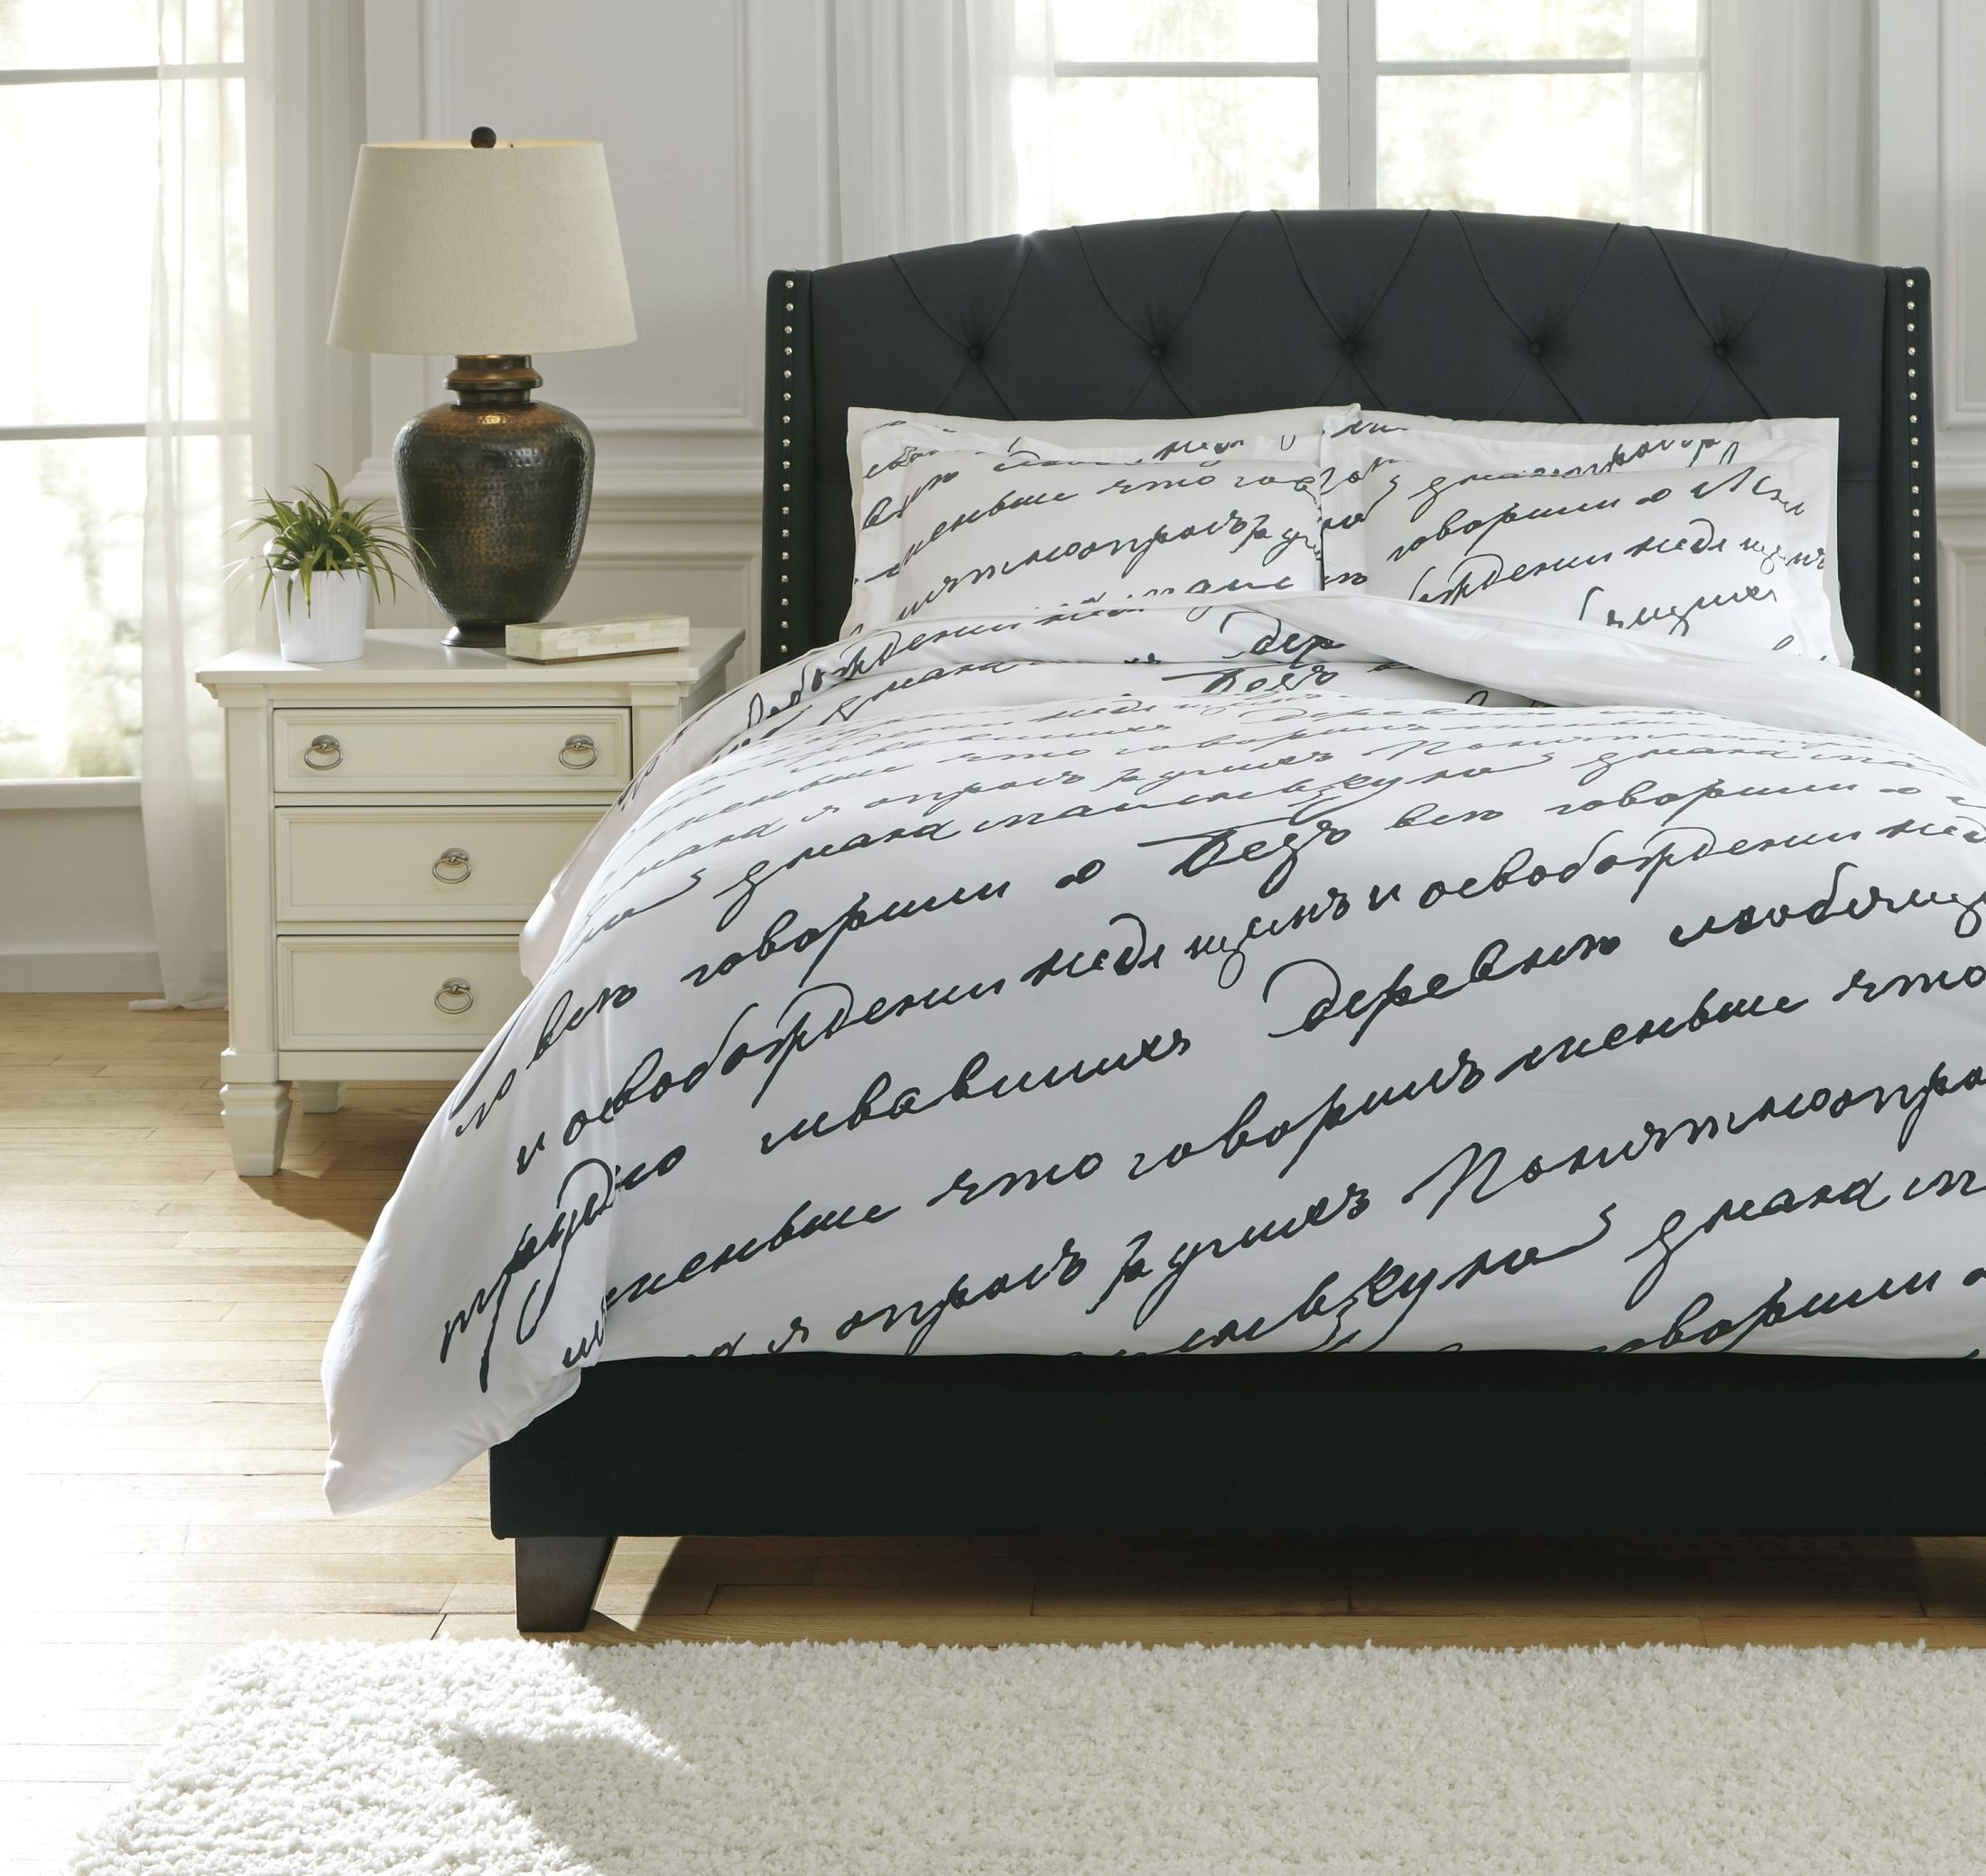 Ashley Furniture Cyrun Gray Queen Duvet Cover Set: Amantipoint White And Gray Queen Duvet Cover Set From